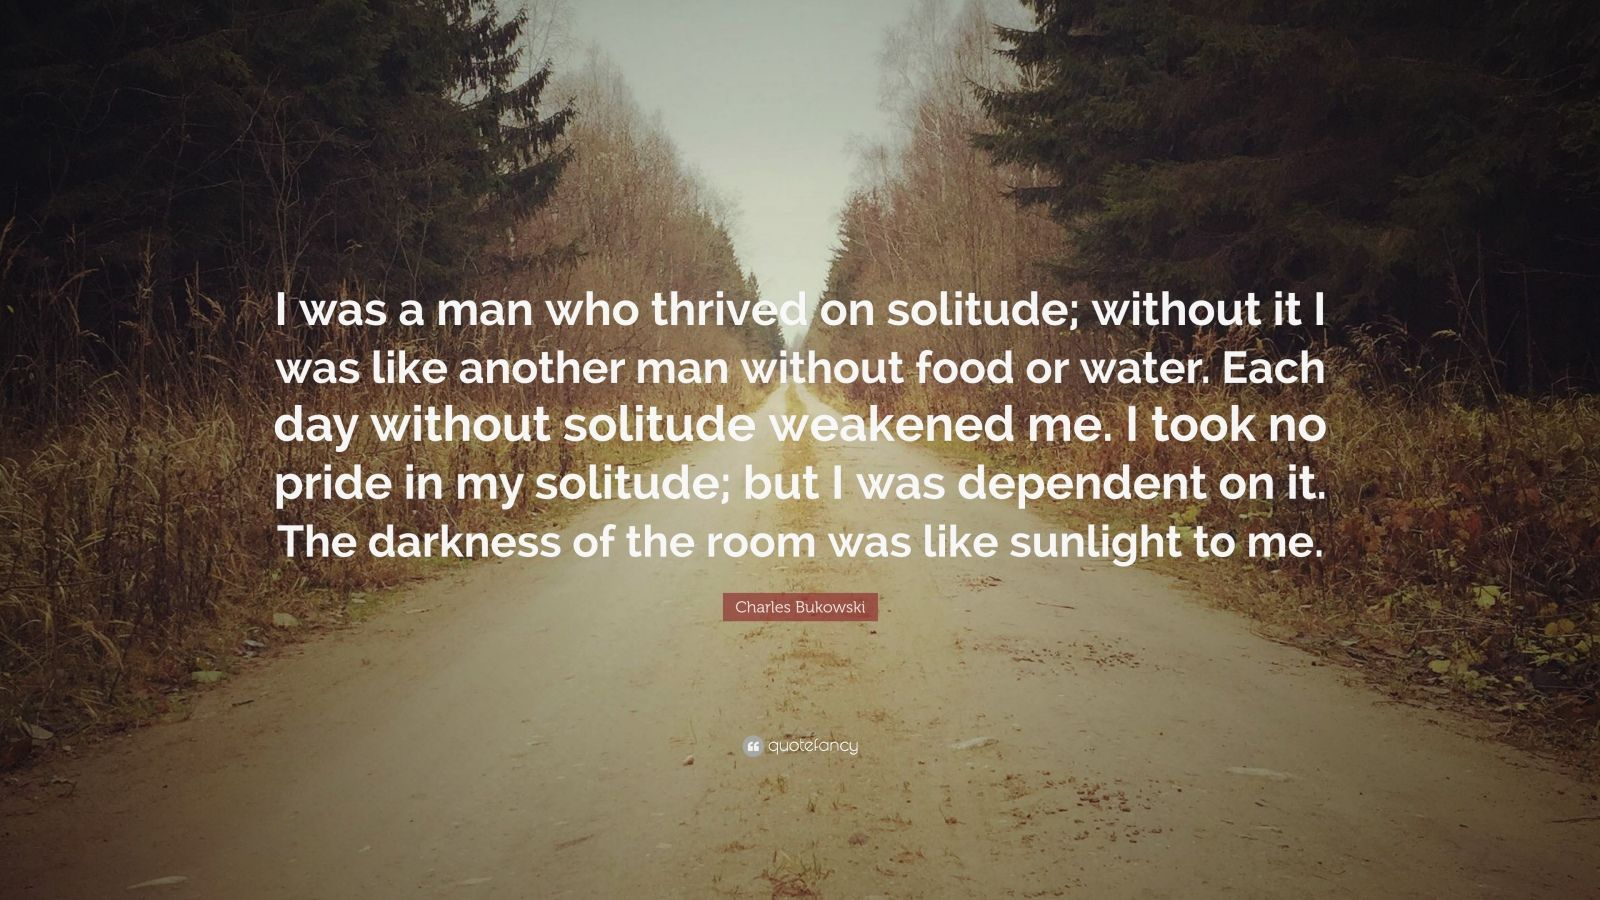 "Charles Bukowski Quote: ""I was a man who thrived on solitude; without it I was like another man without food or water. Each day without solitude weakened me. I took no pride in my solitude; but I was dependent on it. The darkness of the room was like sunlight to me."""